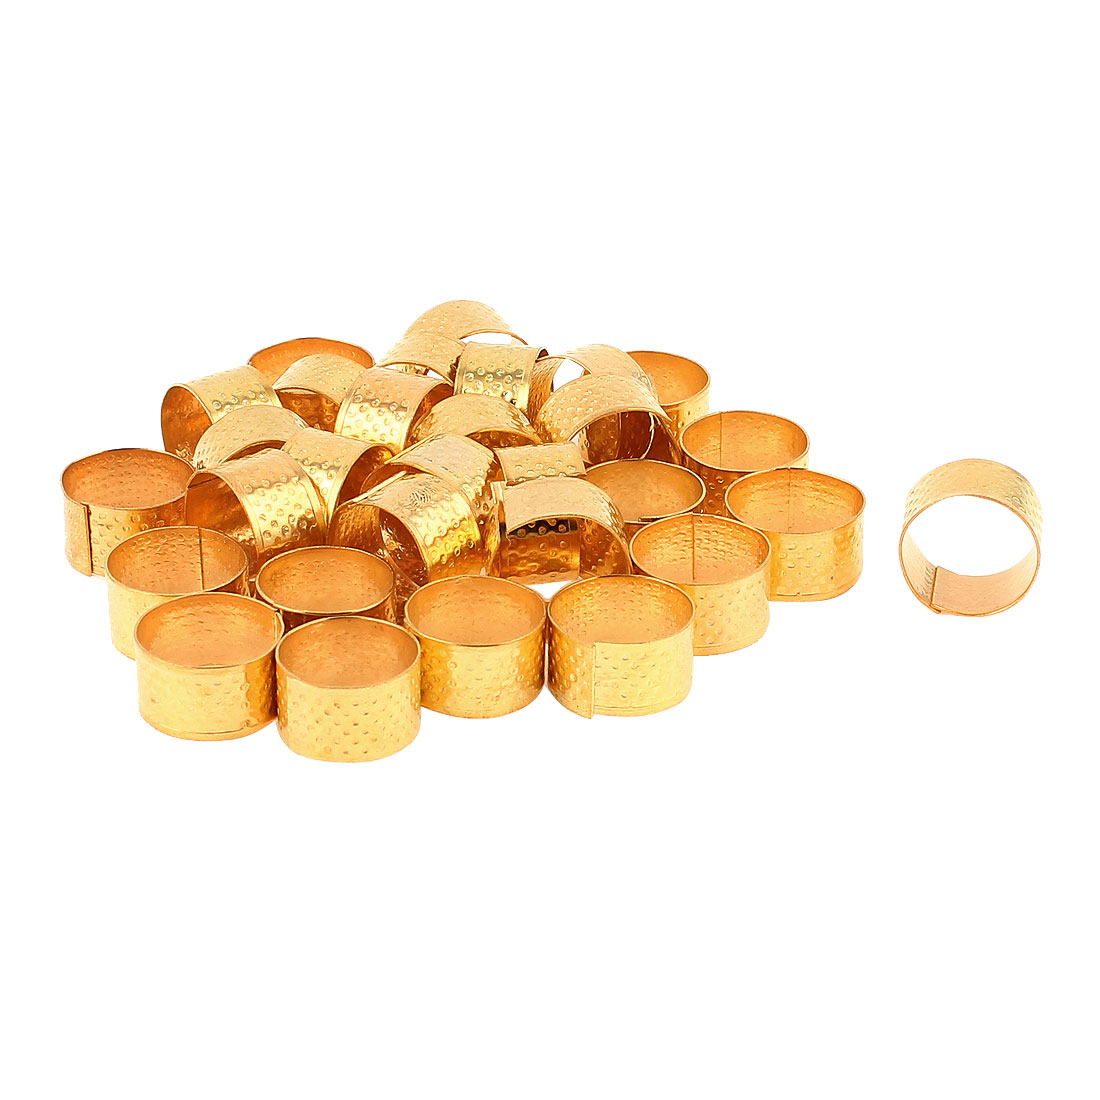 Unique Bargains 30 Pcs 21mm Diameter Gold Tone Metal Ring Reeded Thimble for Tailoring Sewing